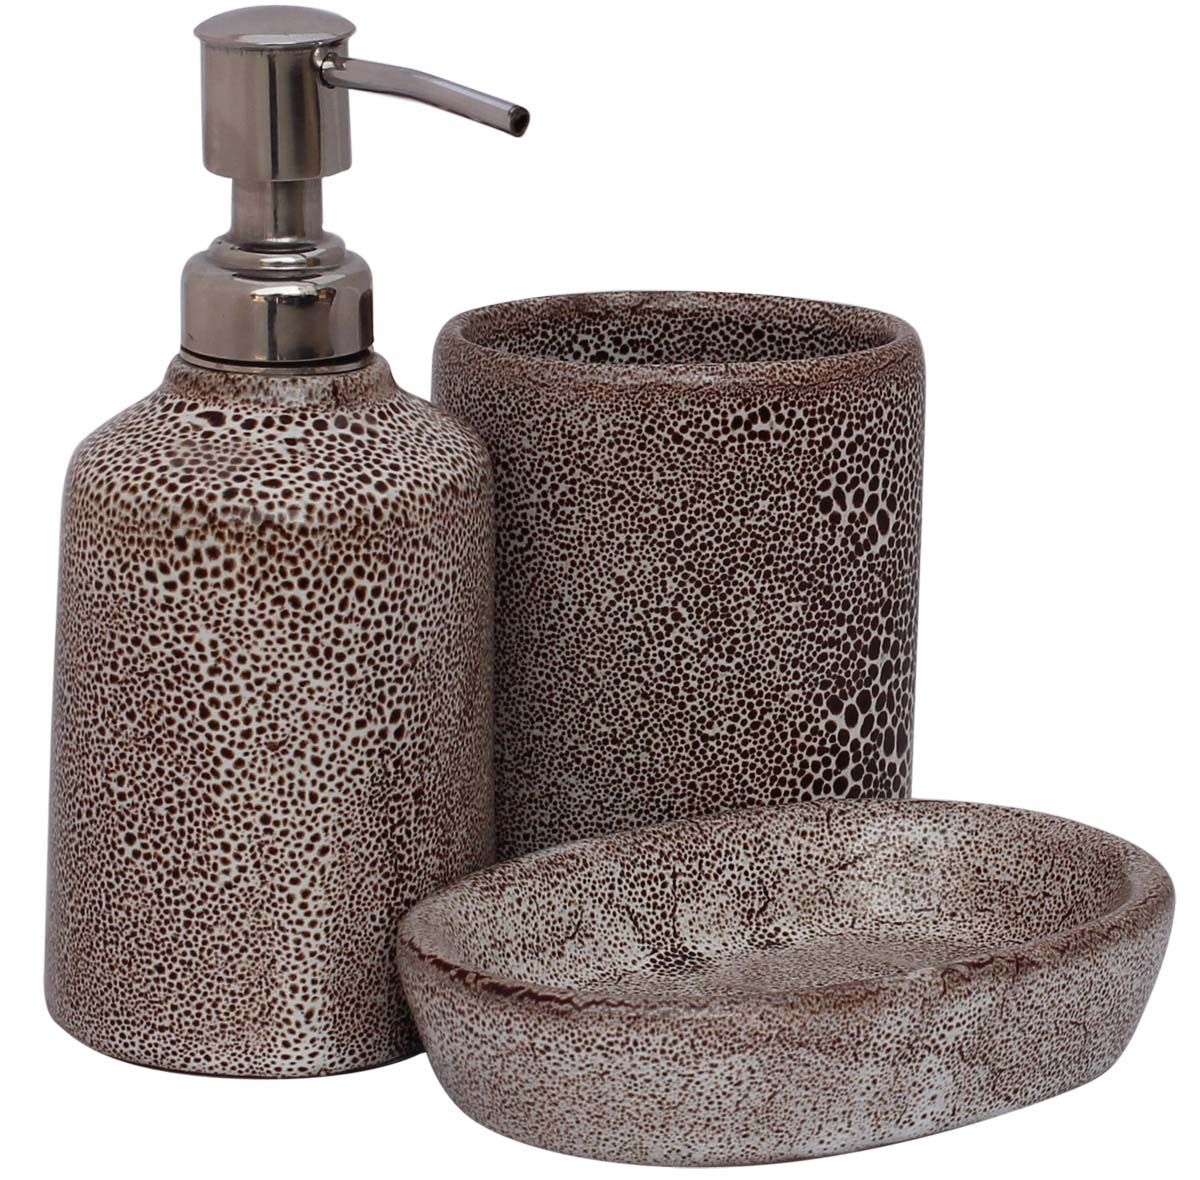 bulk wholesale handmade ceramic bath accessories set 3 items hand painted mottled